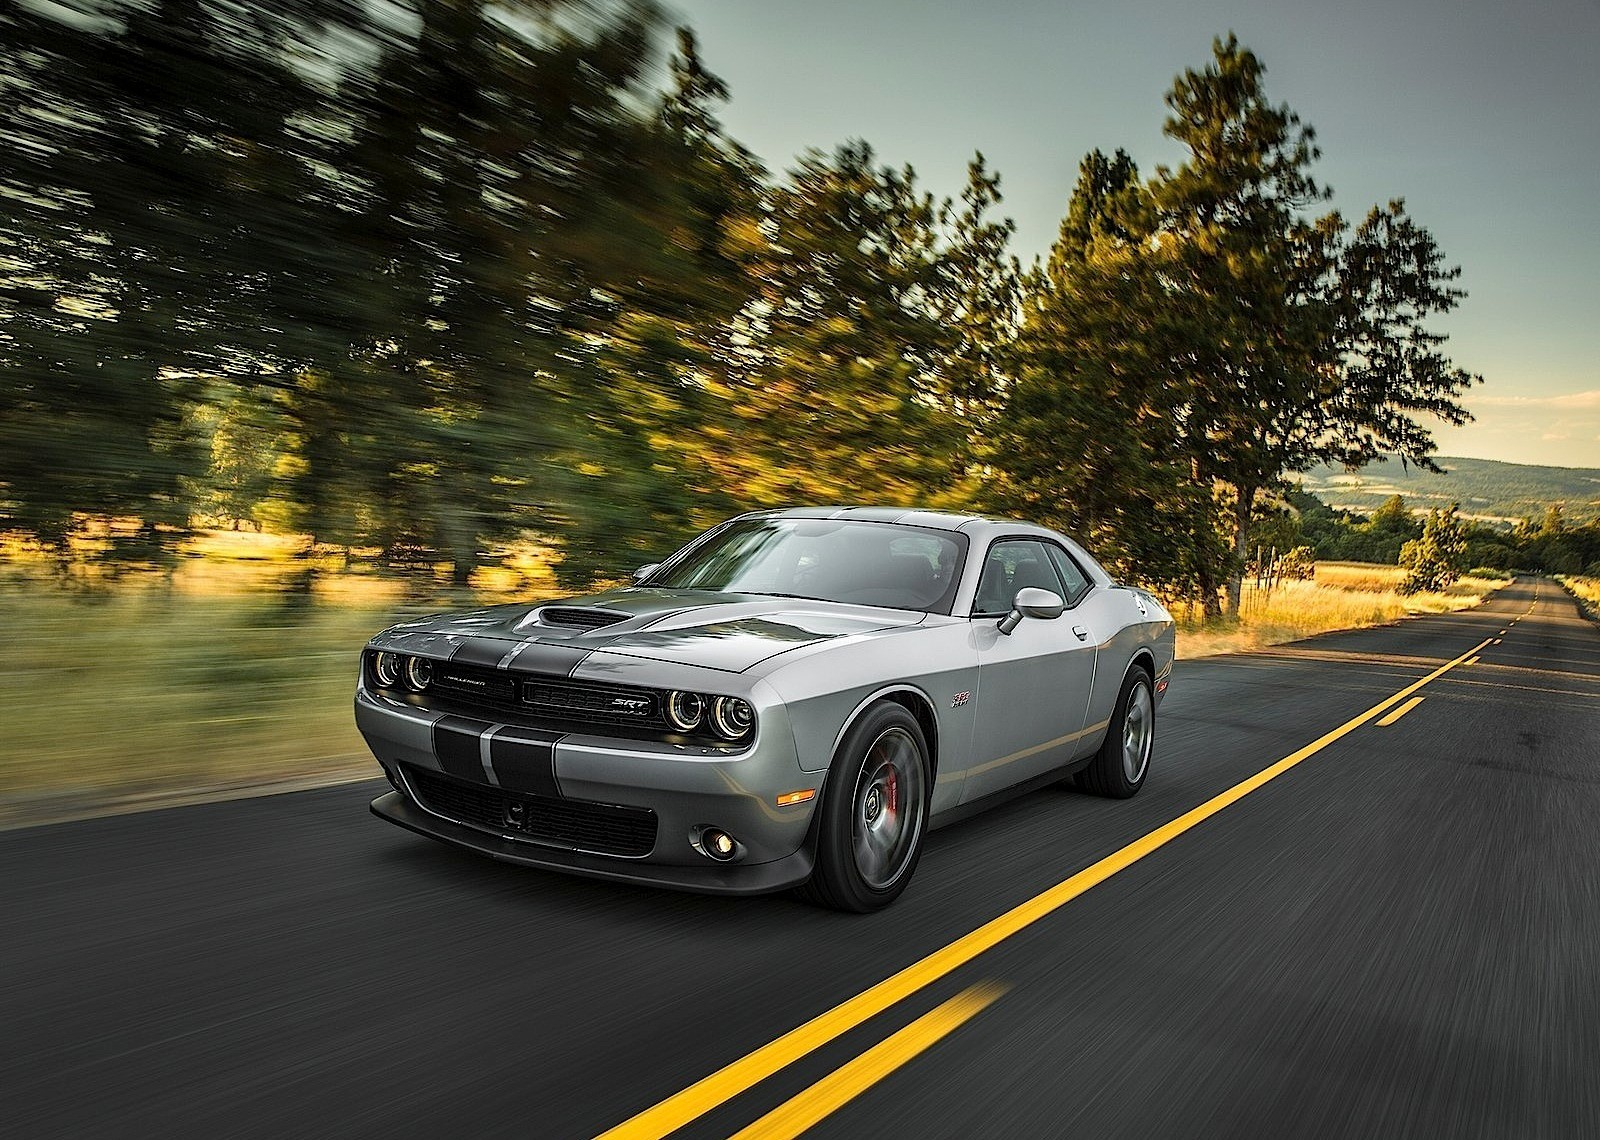 2016 dodge challenger and charger srt hellcat get hefty price increase demand is still soaring. Black Bedroom Furniture Sets. Home Design Ideas